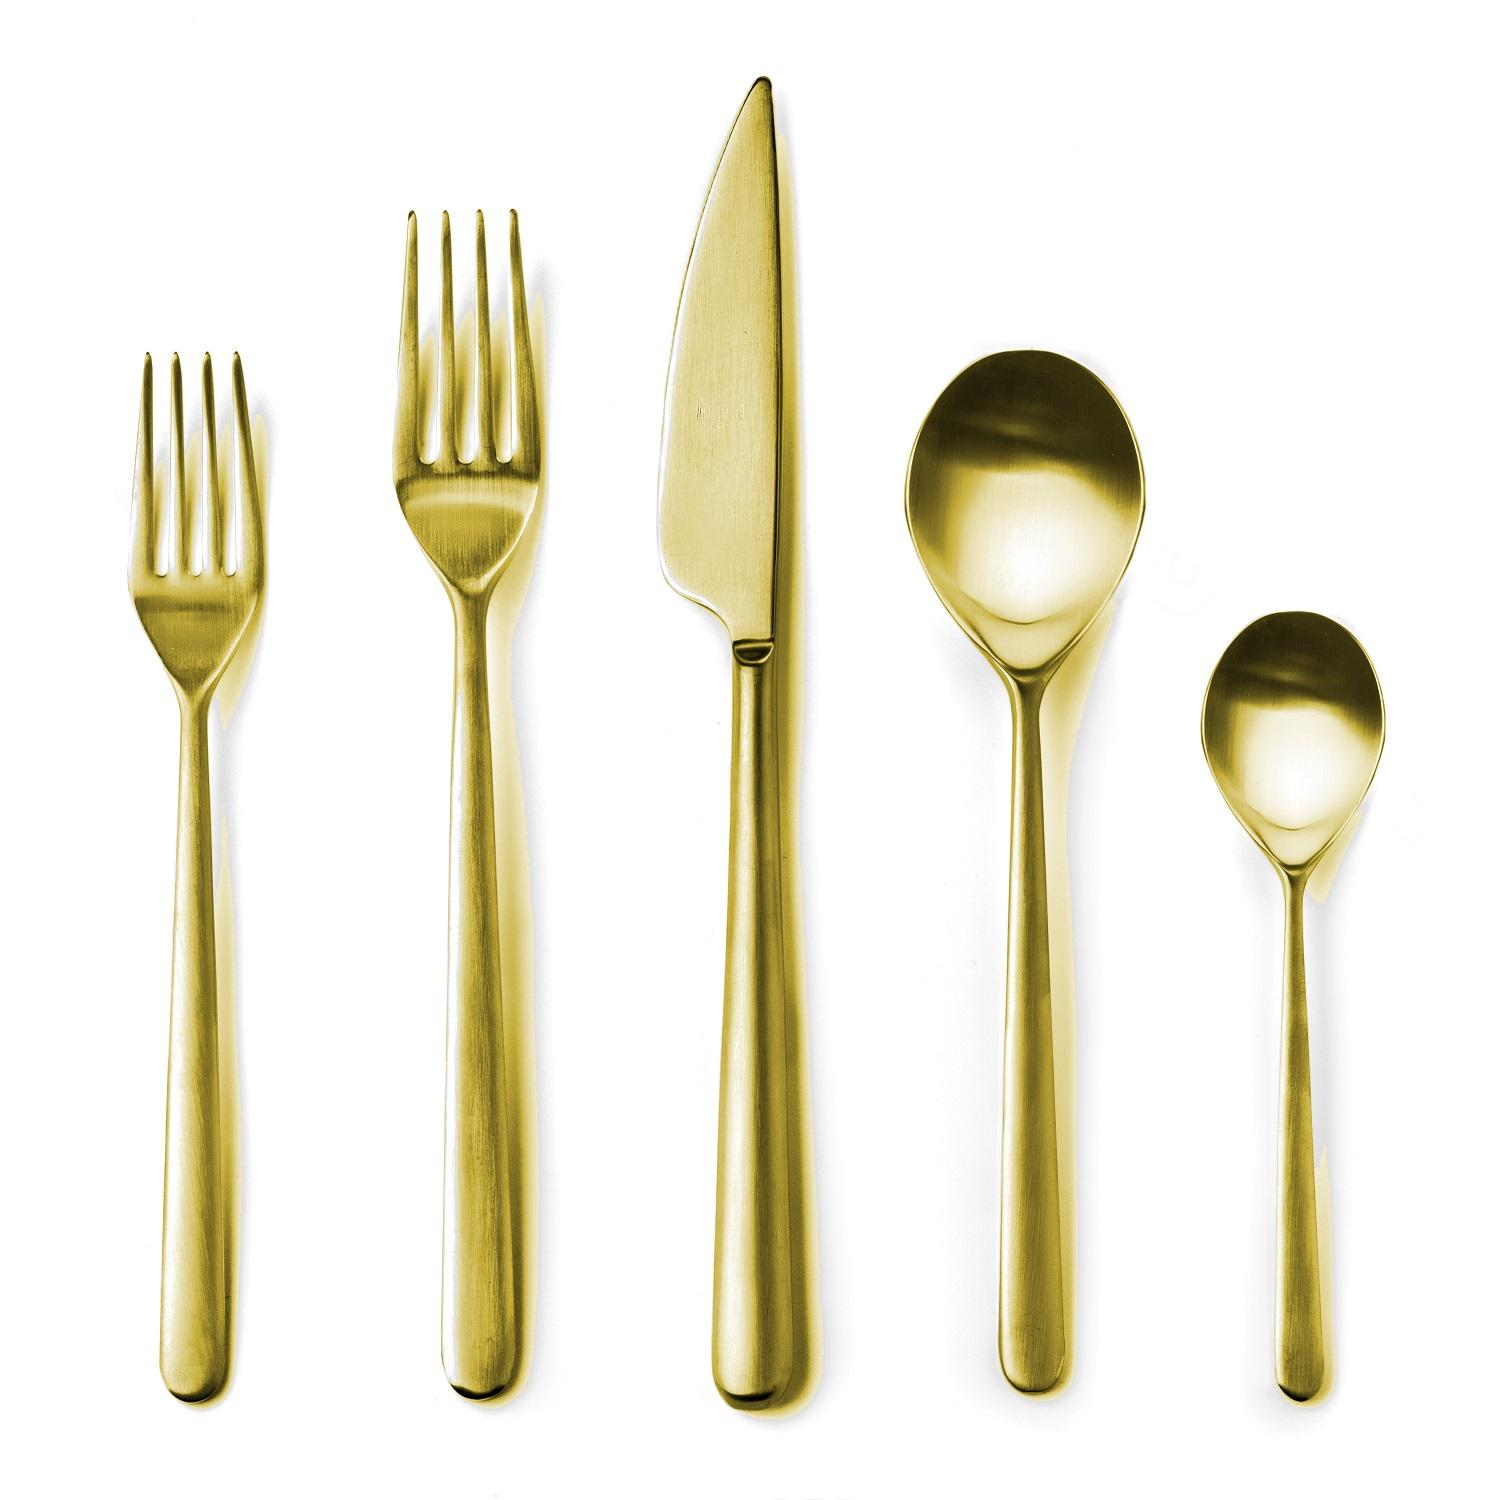 Create an ambiance of elegance for a special occasion with this stylish set of polished gold silverware. http://bit.ly/2zhPWfF